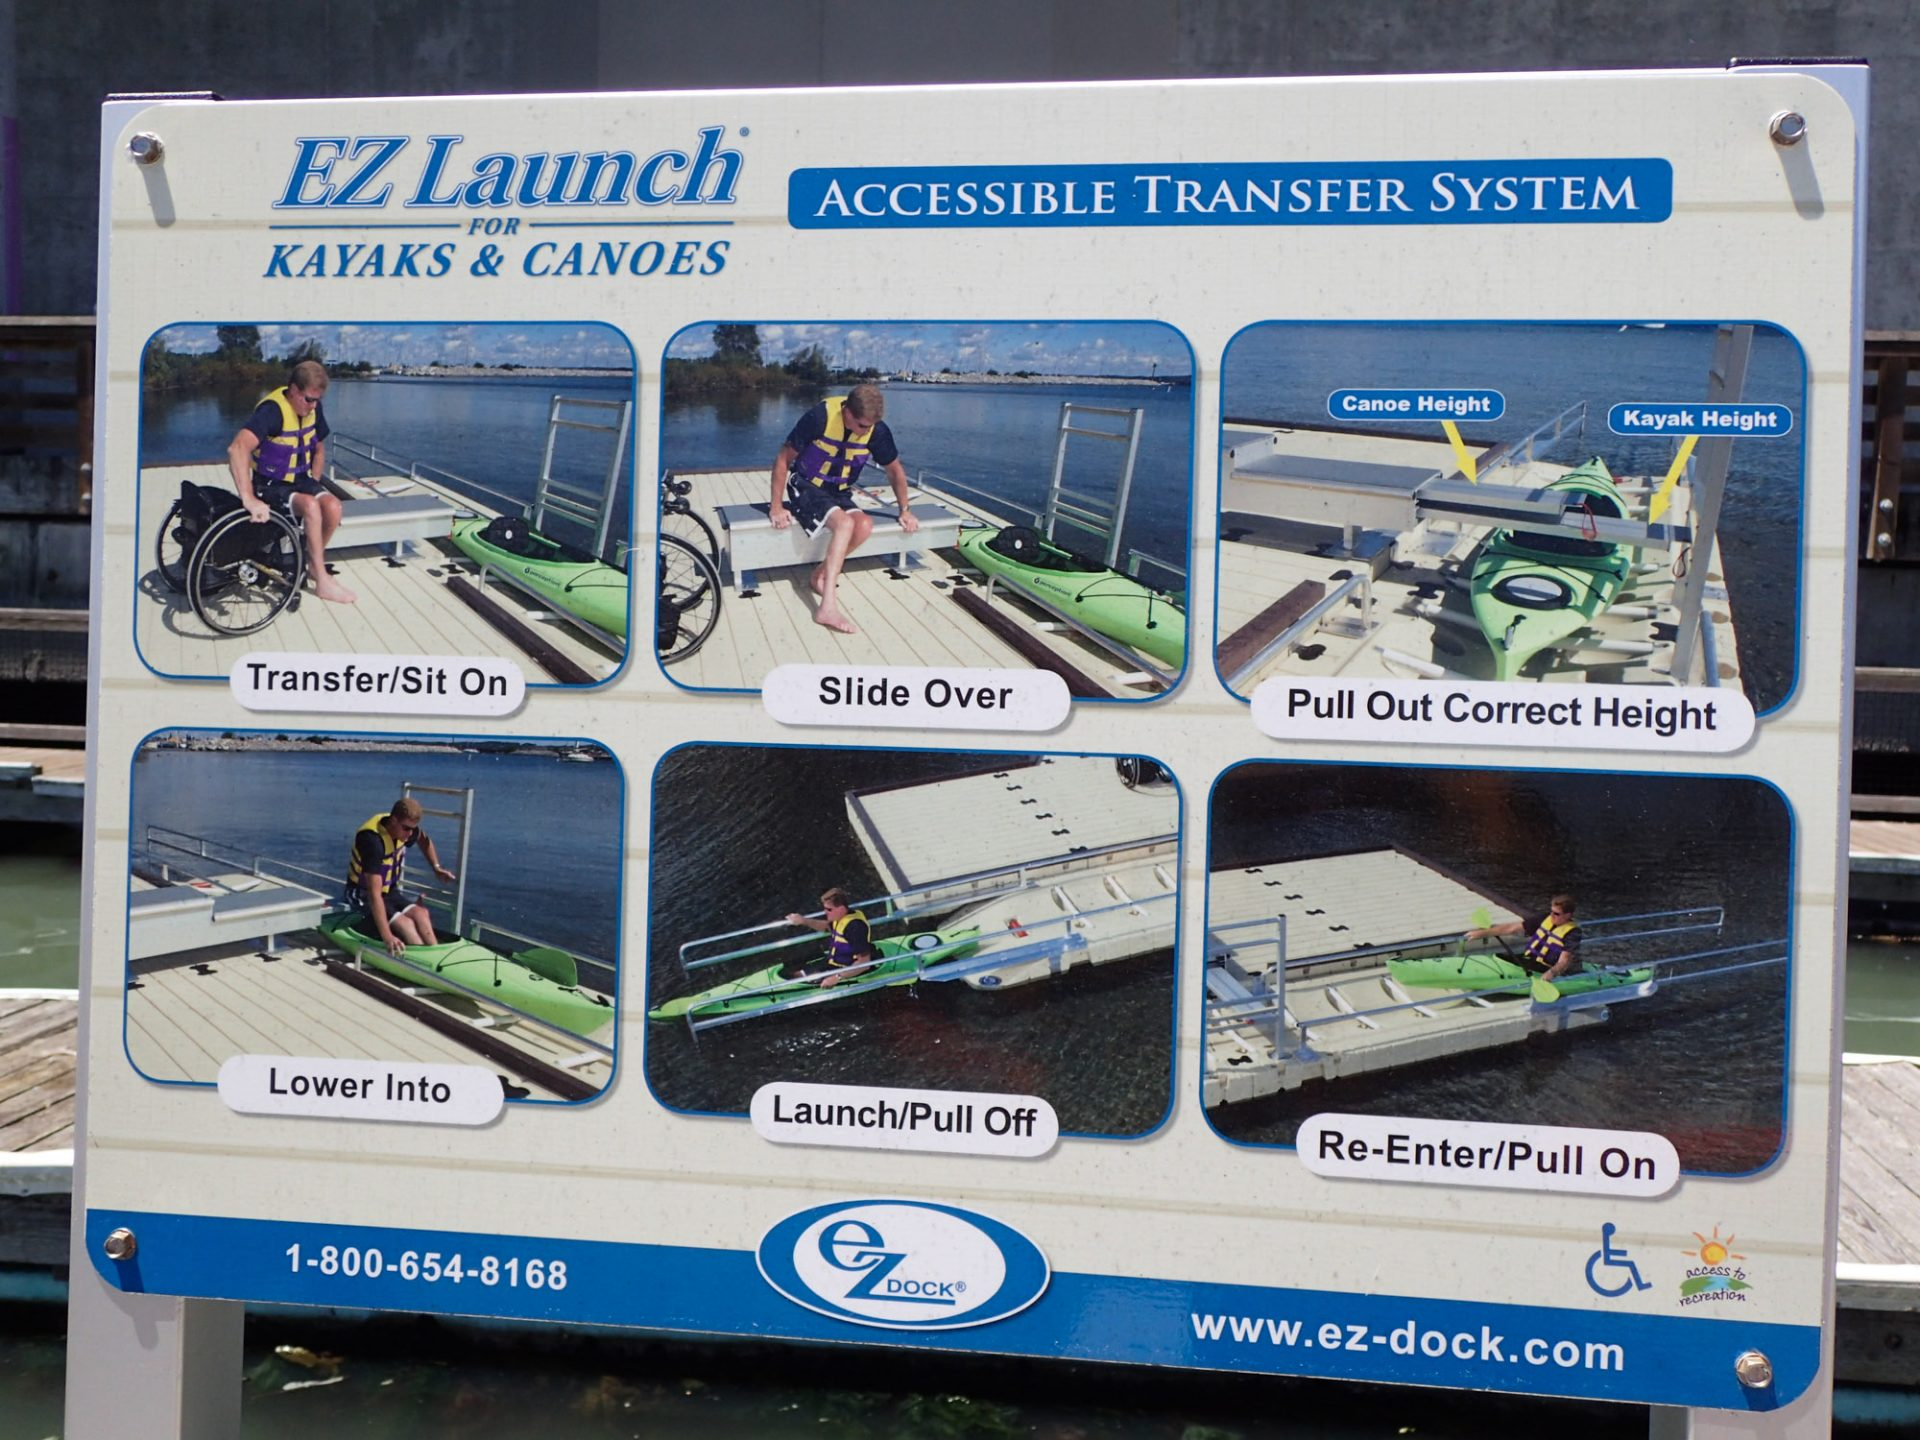 "Sign: ""EZ Launch for Kayaks and Canoes: Accessible Transfer System,"" with images of a person in a wheelchair getting into a kayak and disembarking: Transfer/sit on, Slide over, Pull out correct height, Lower into, Launch/Pull off, Re-enter/Pull on."" Phone: 1-800-654-8168, website: www.ez-dock.com"